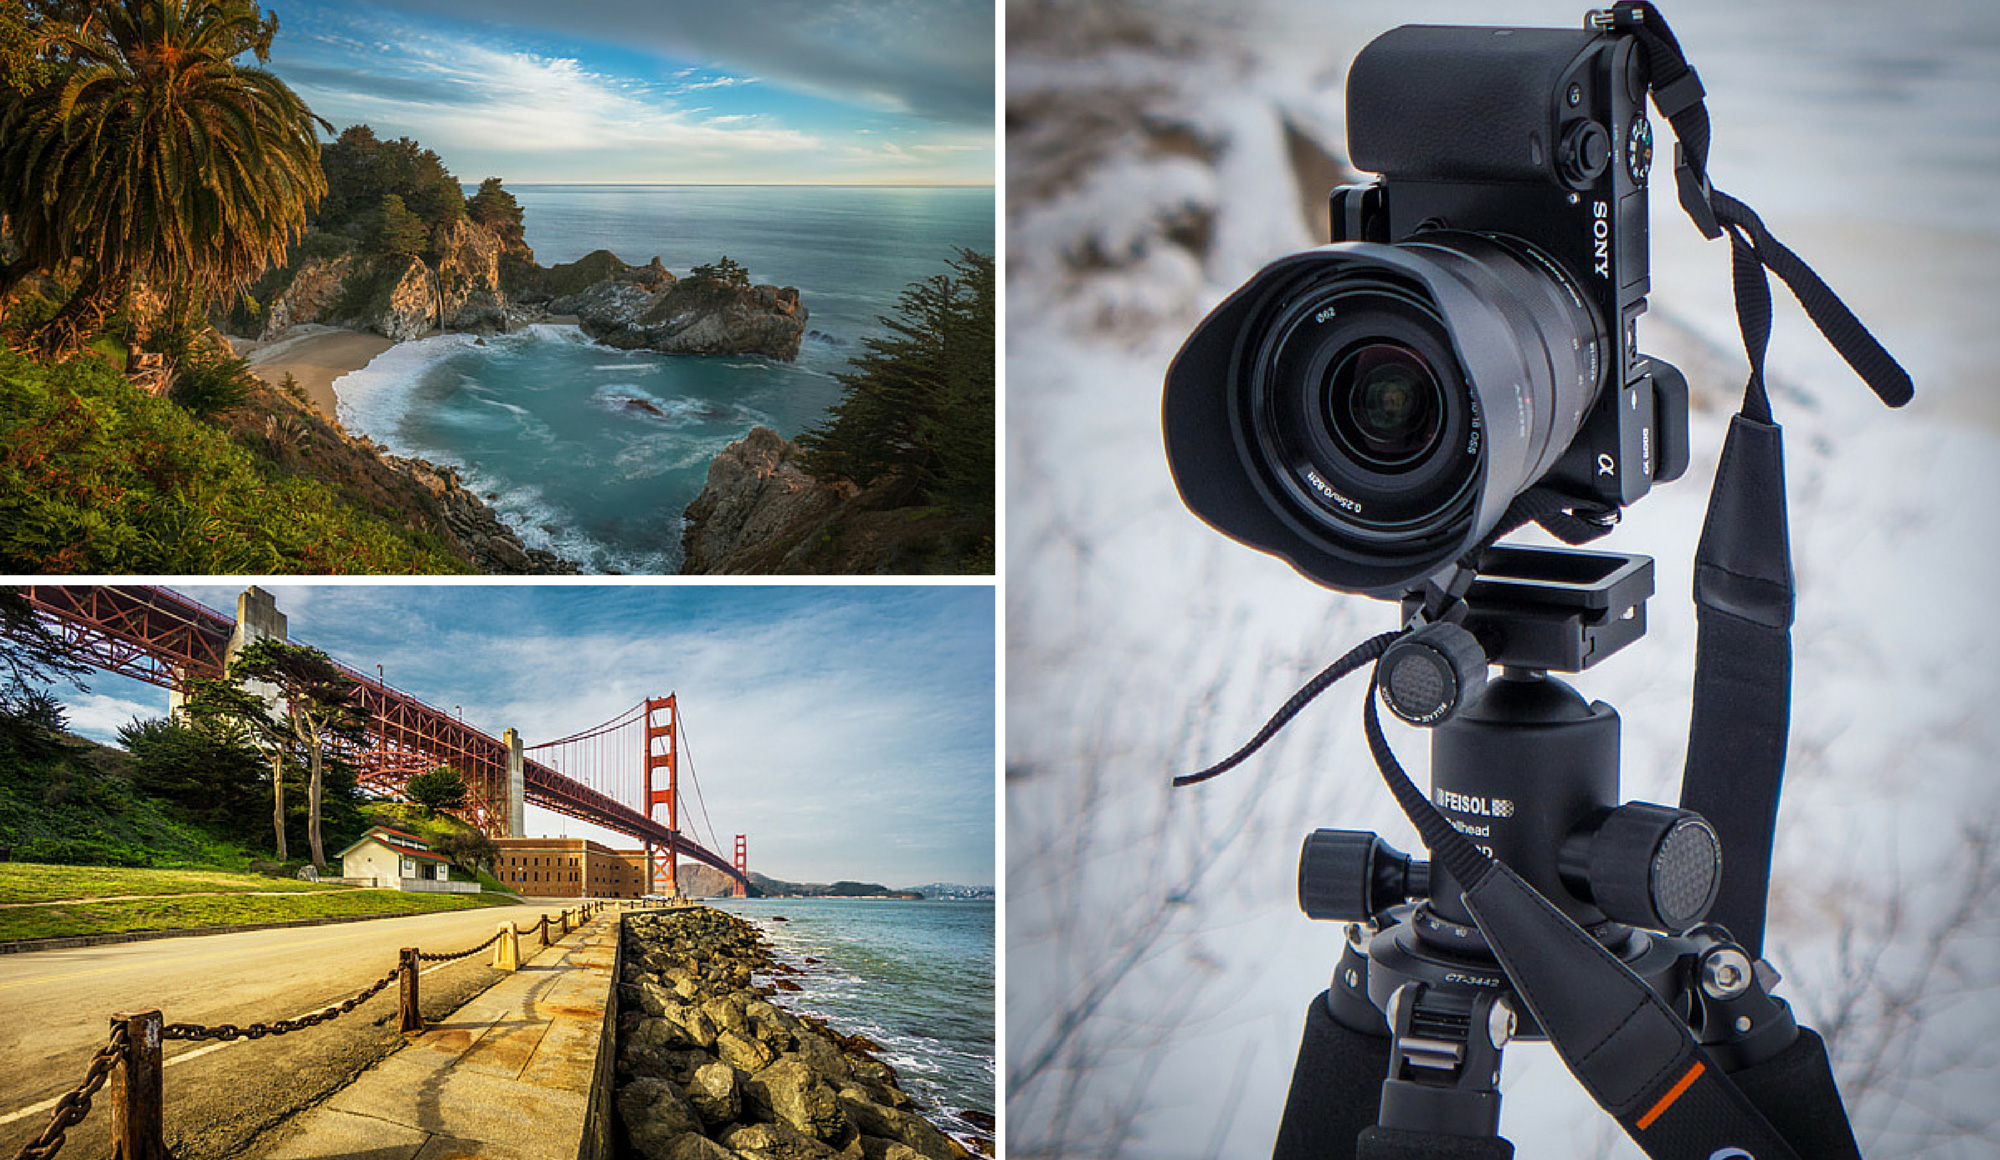 5 Lessons Learned Switching From Dslr To Mirrorless For